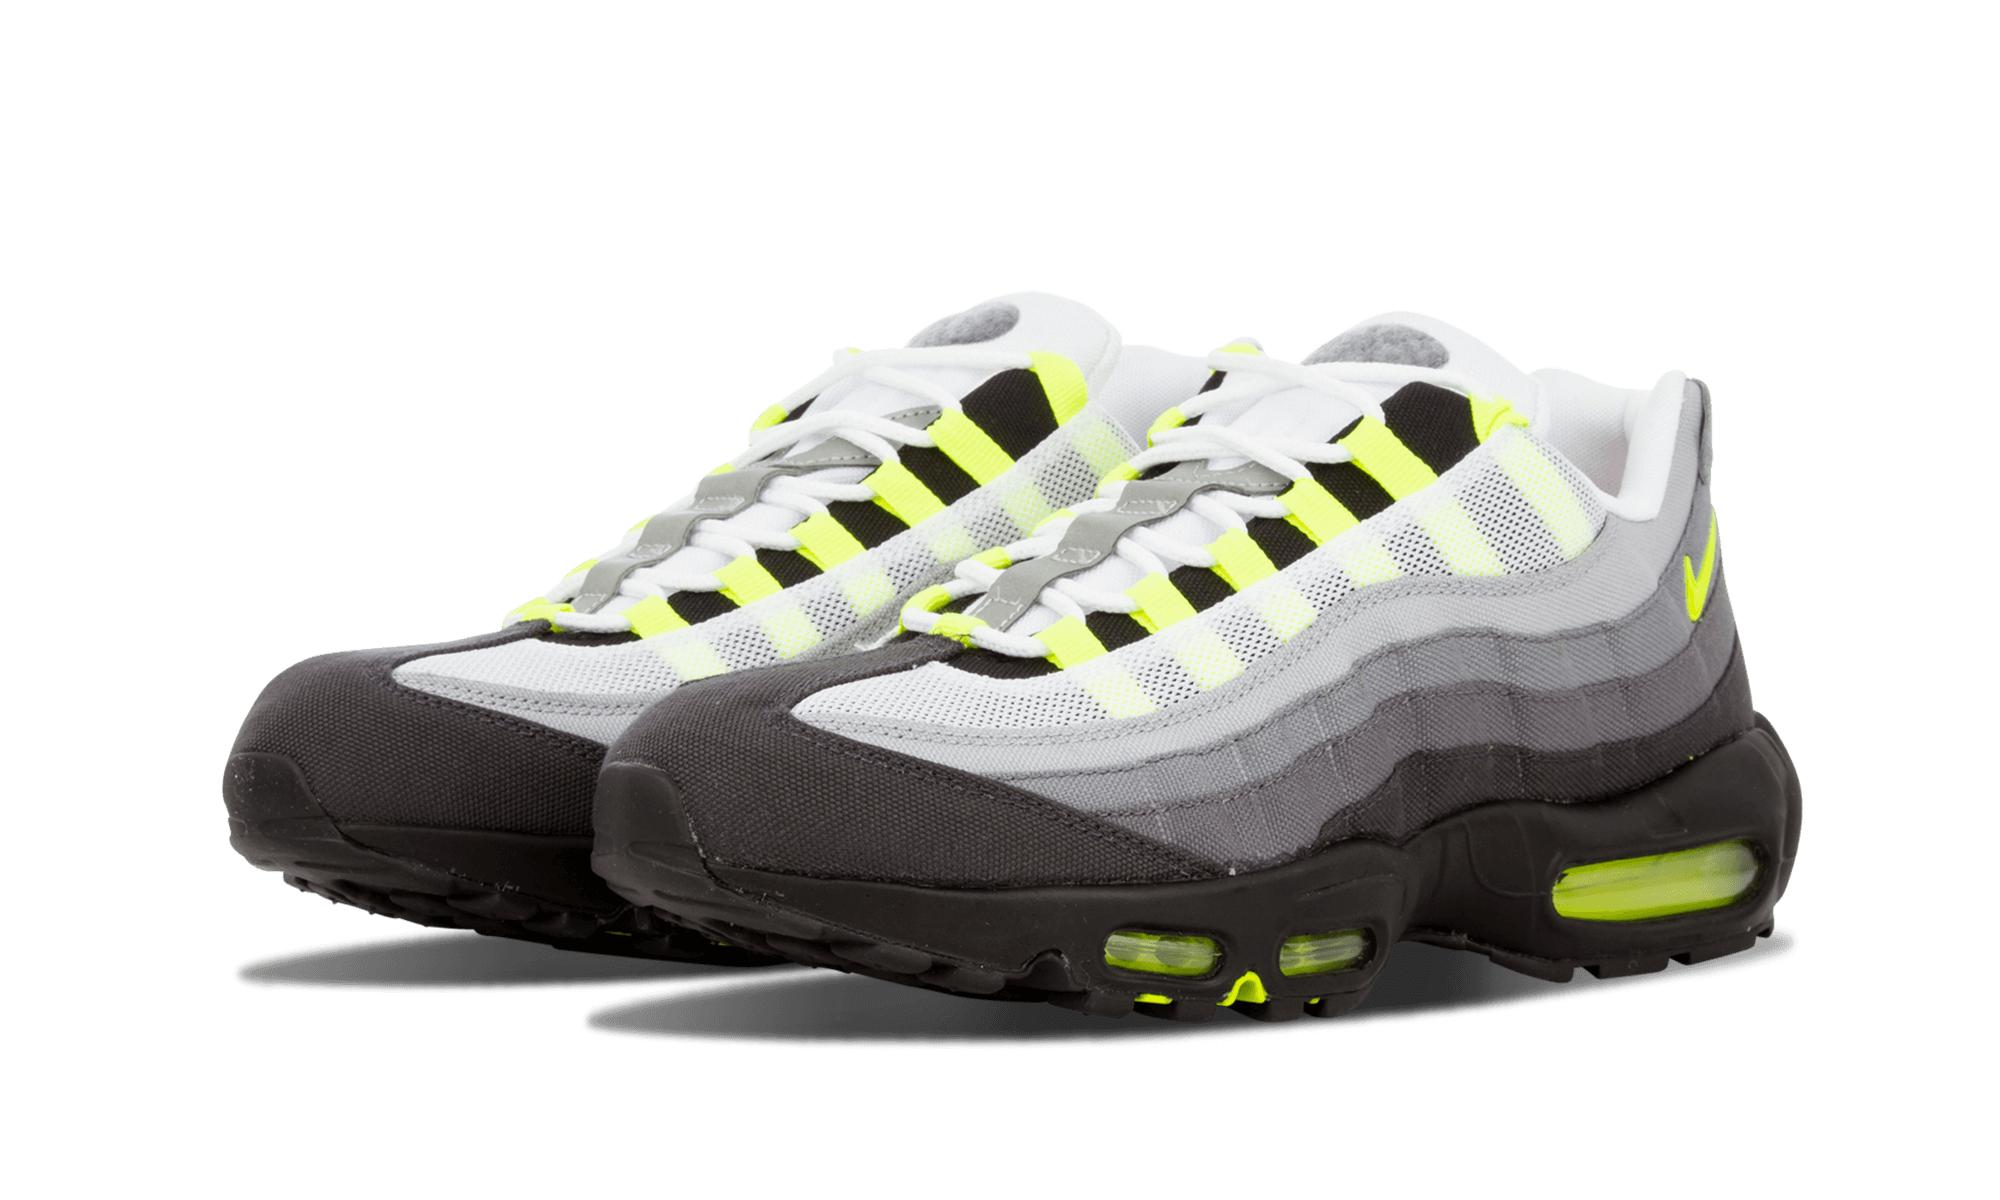 a2adec460f Lyst - Nike Air Max 95 V Sp in Gray for Men